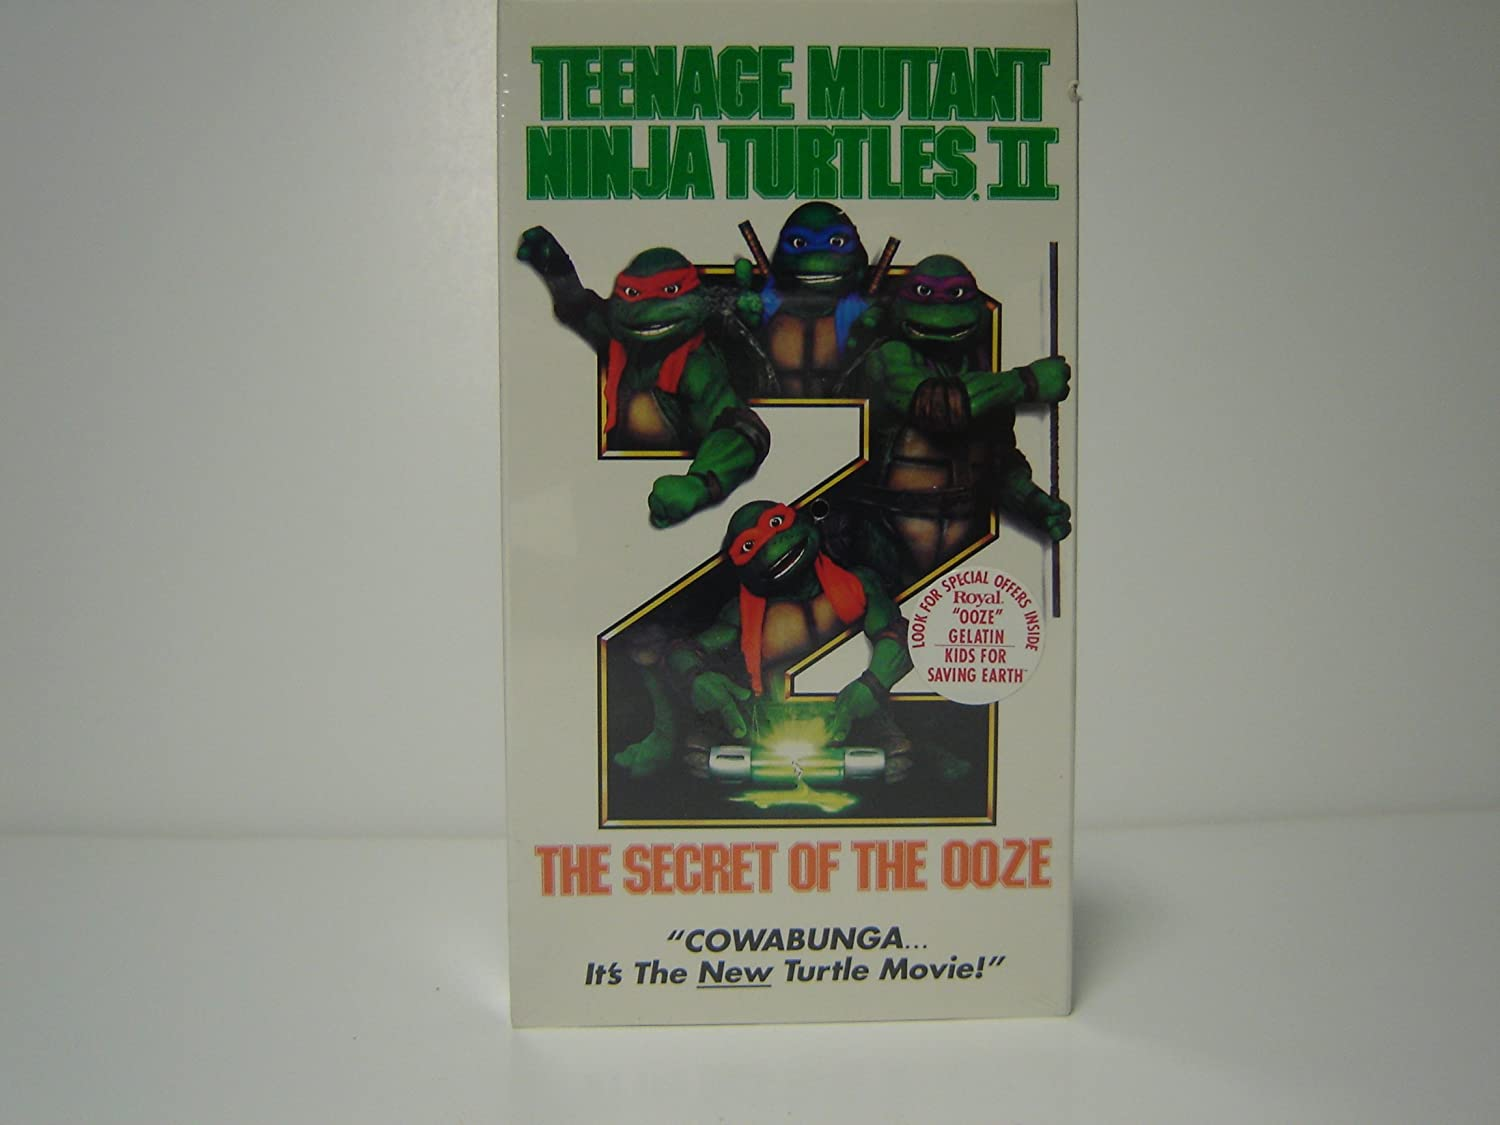 Amazon.com: Teenage Mutant Ninja Turtles II - The Secret of ...